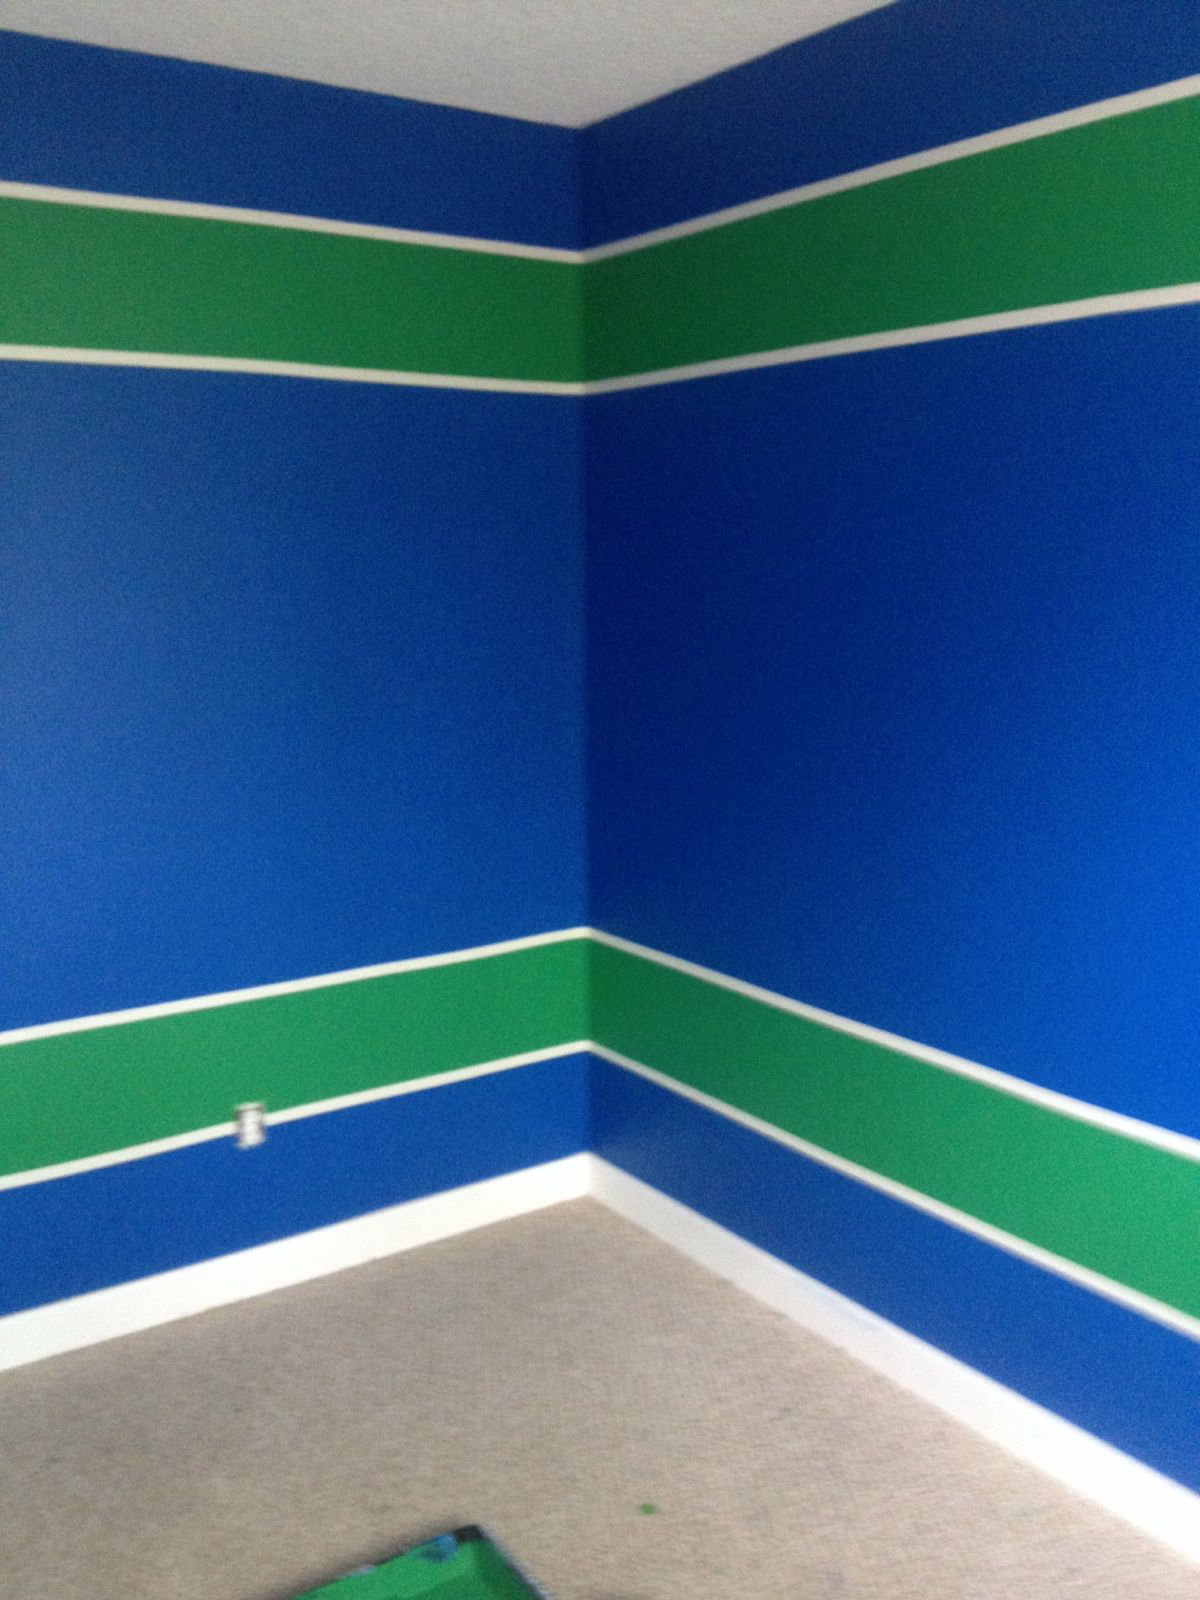 Painted Jesse S Room Vancouver Canucks Colours Blue And Green